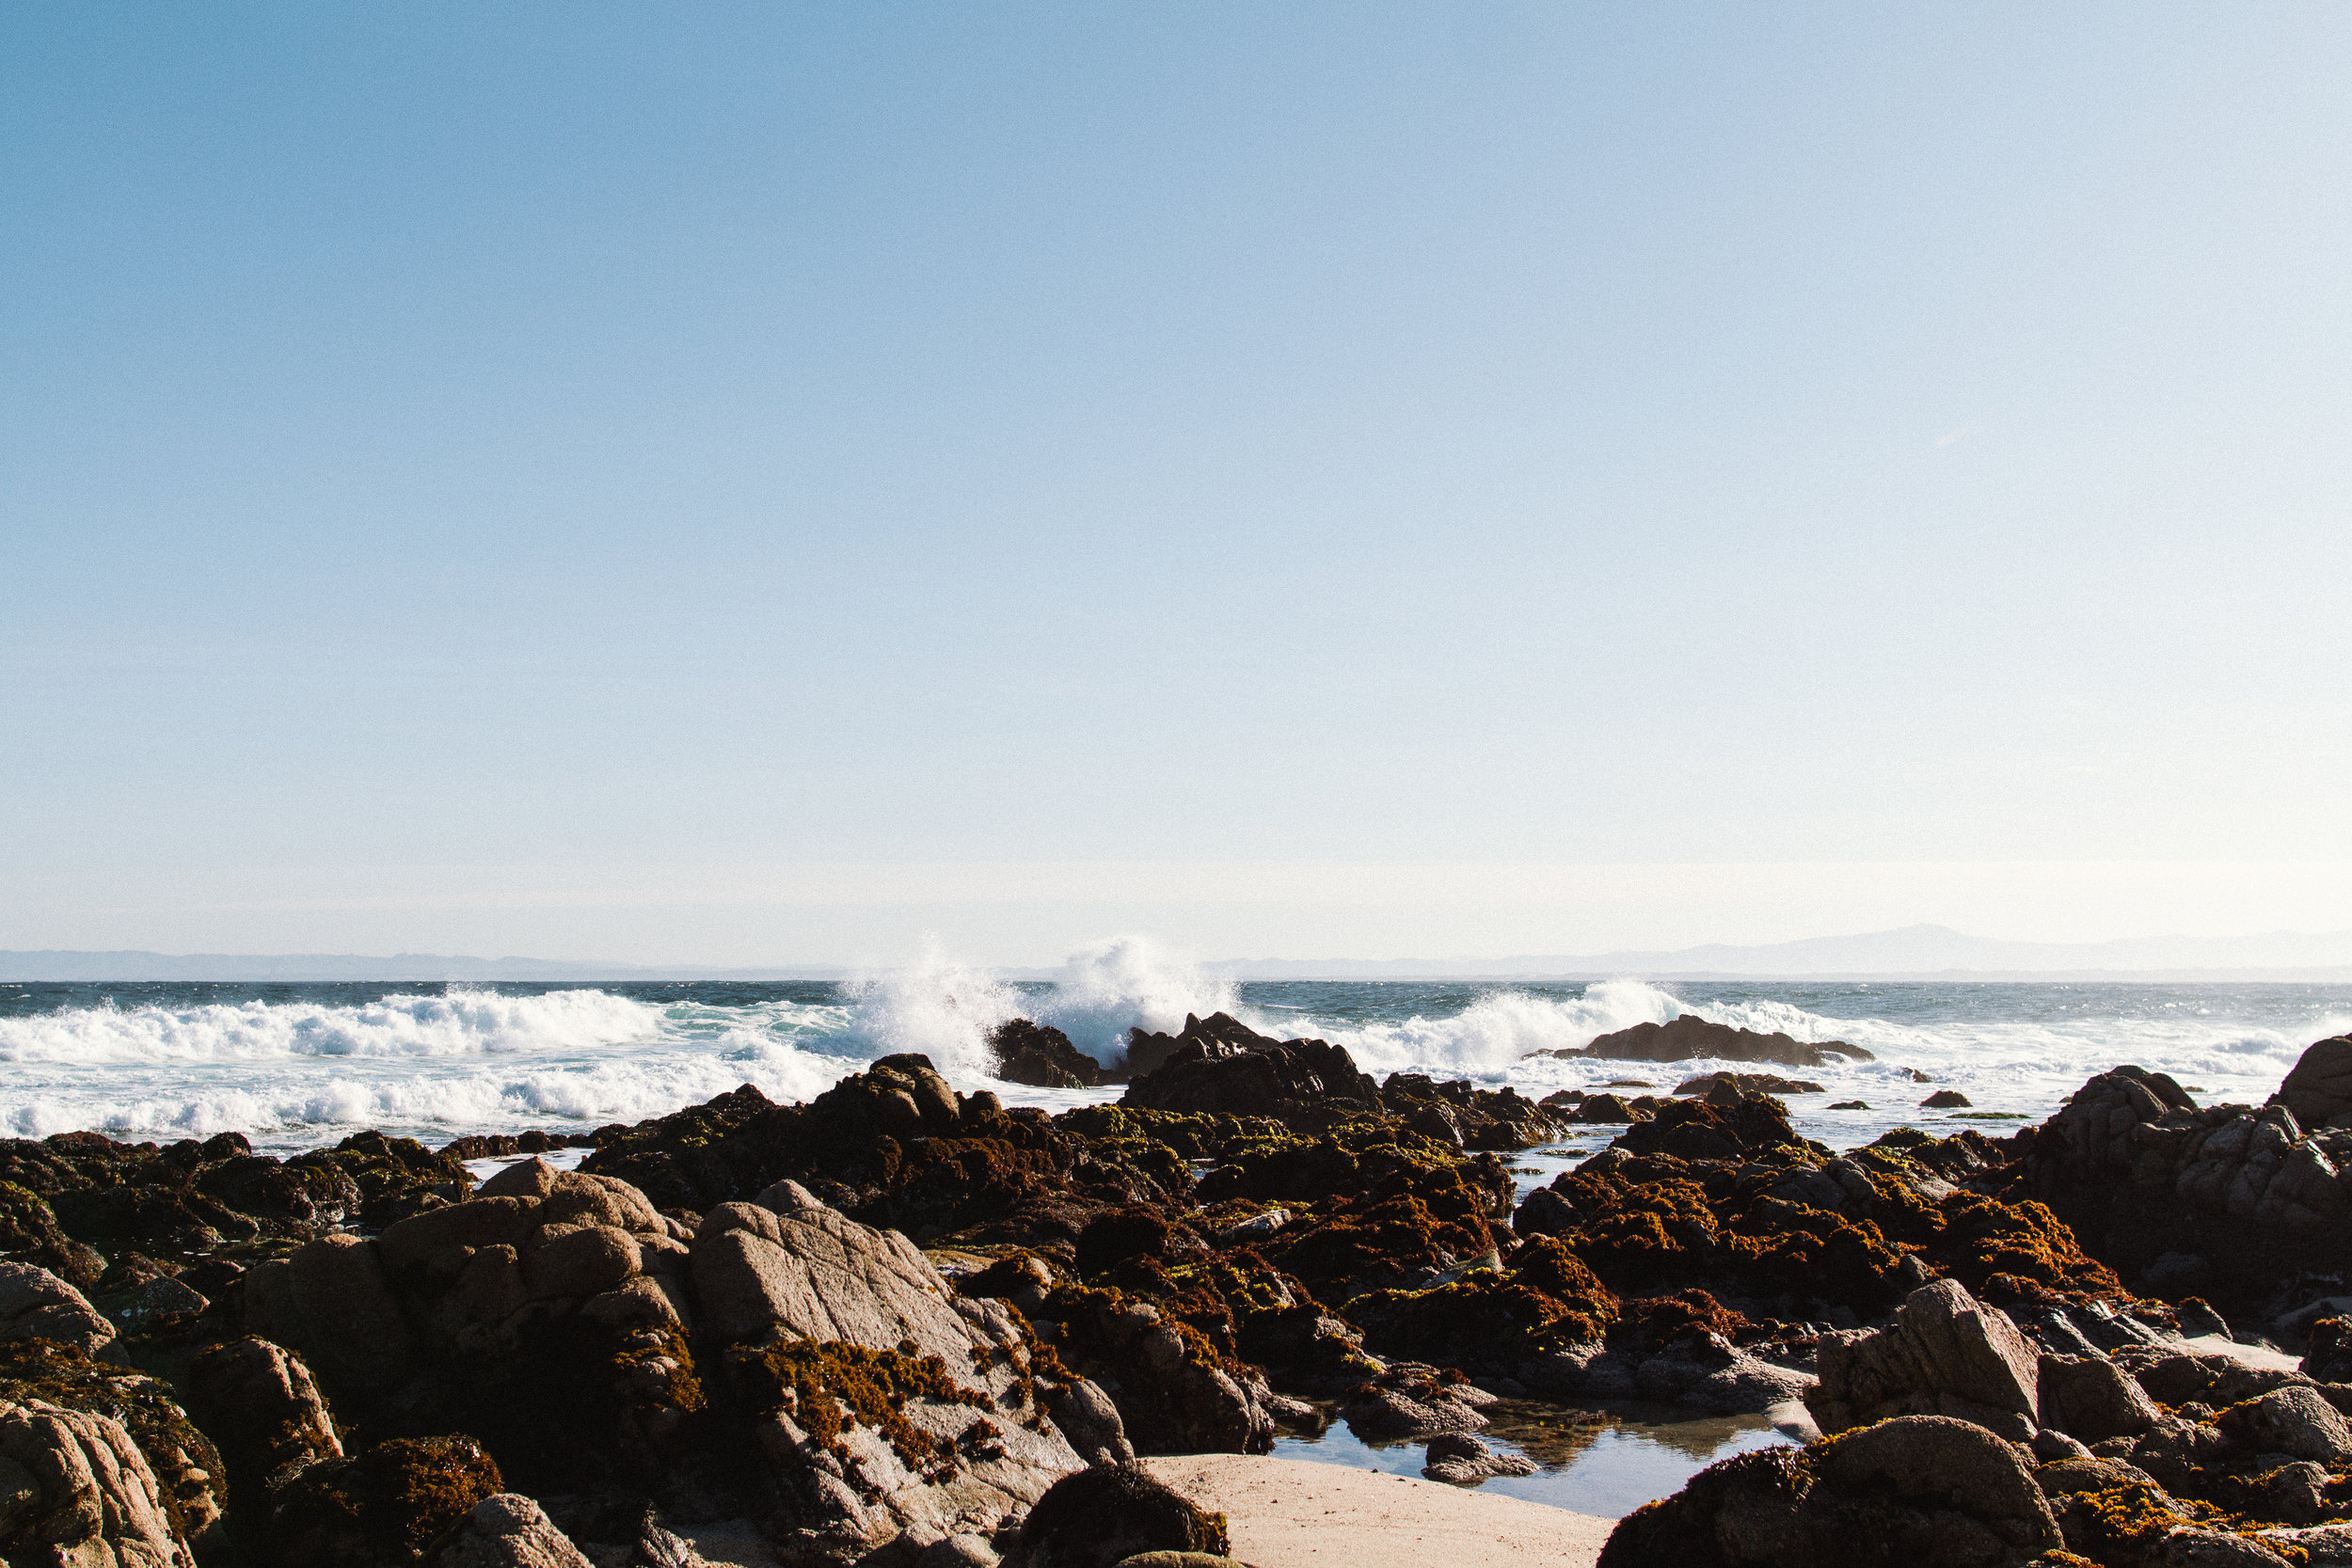 Commercial Adventure Lifestyle Photography in Monterey Bay, California